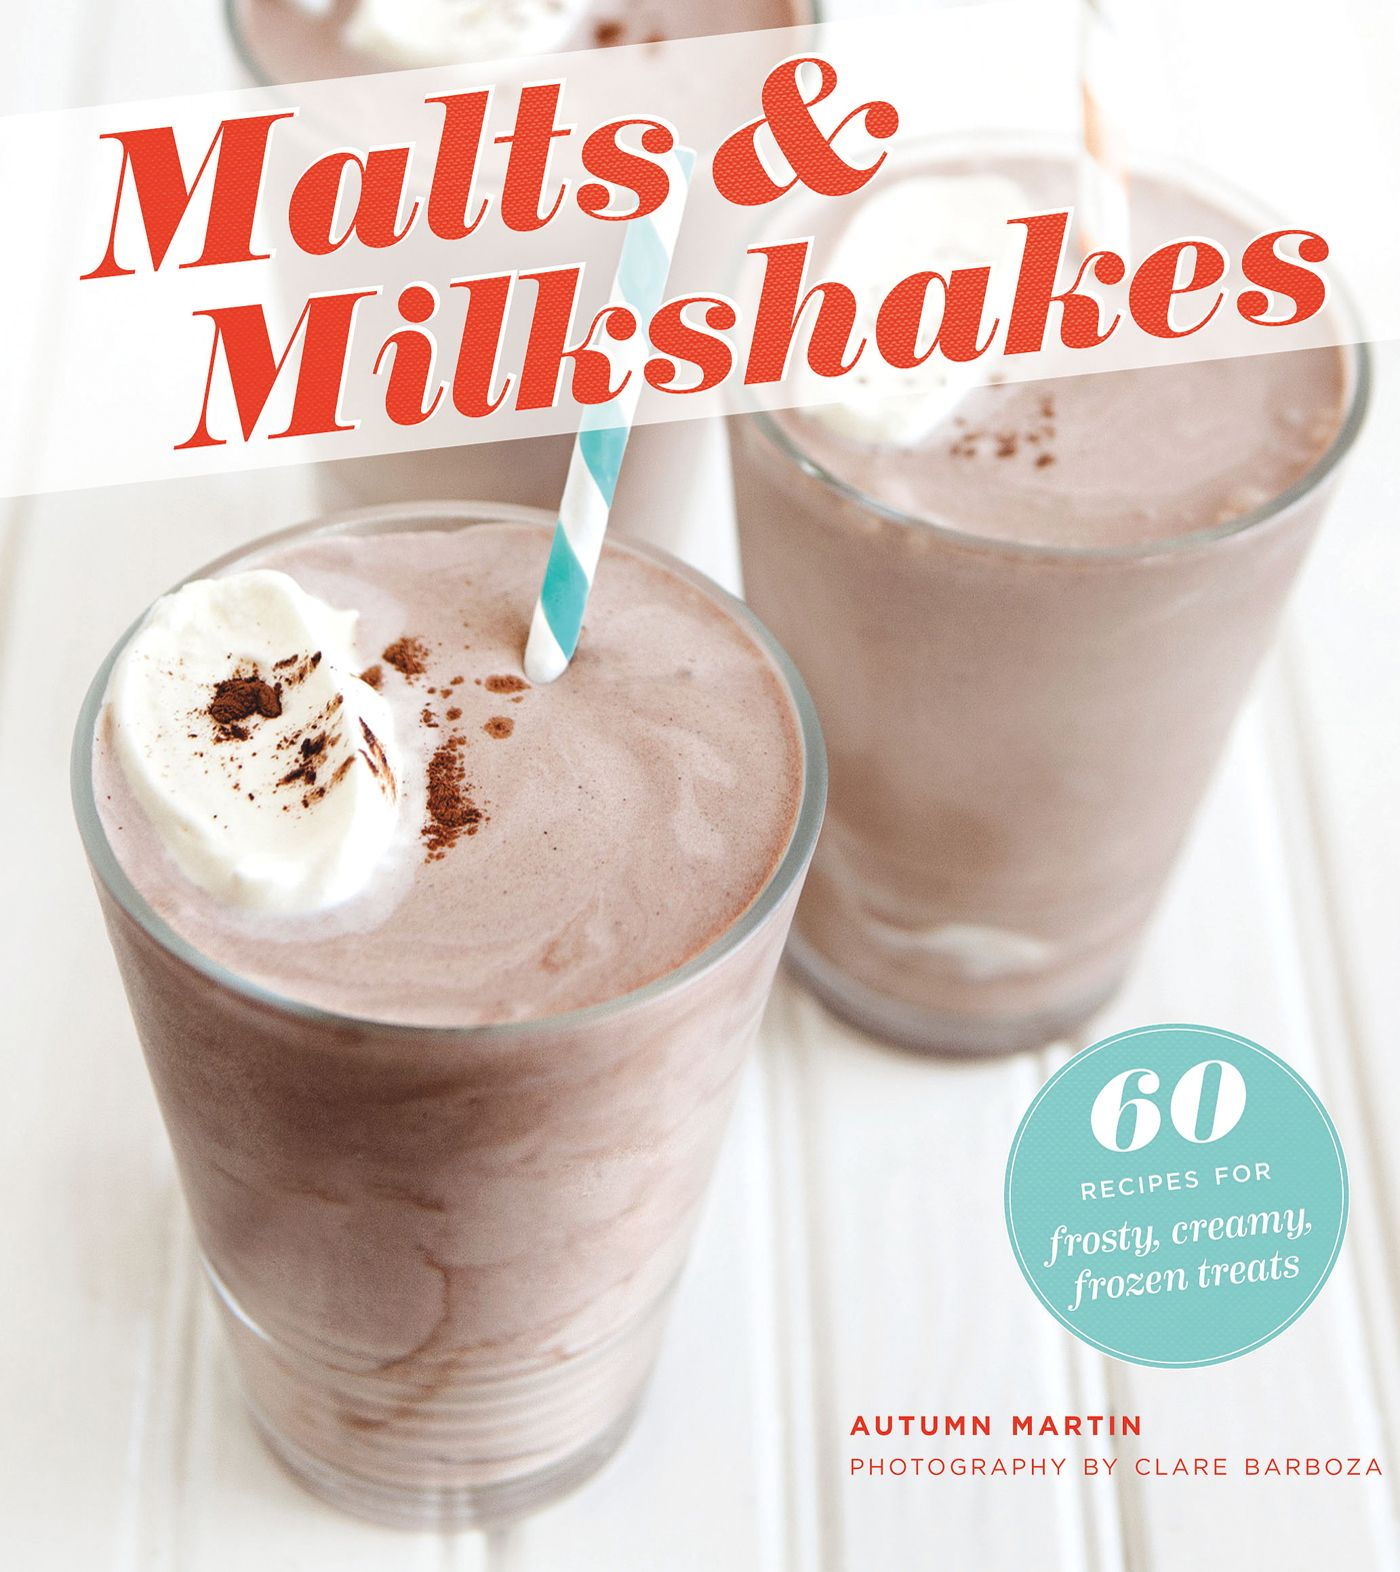 This sweet collection of 60 recipes puts a new spin on an old-fashioned treat with comforting dessert drinks from times new and old!